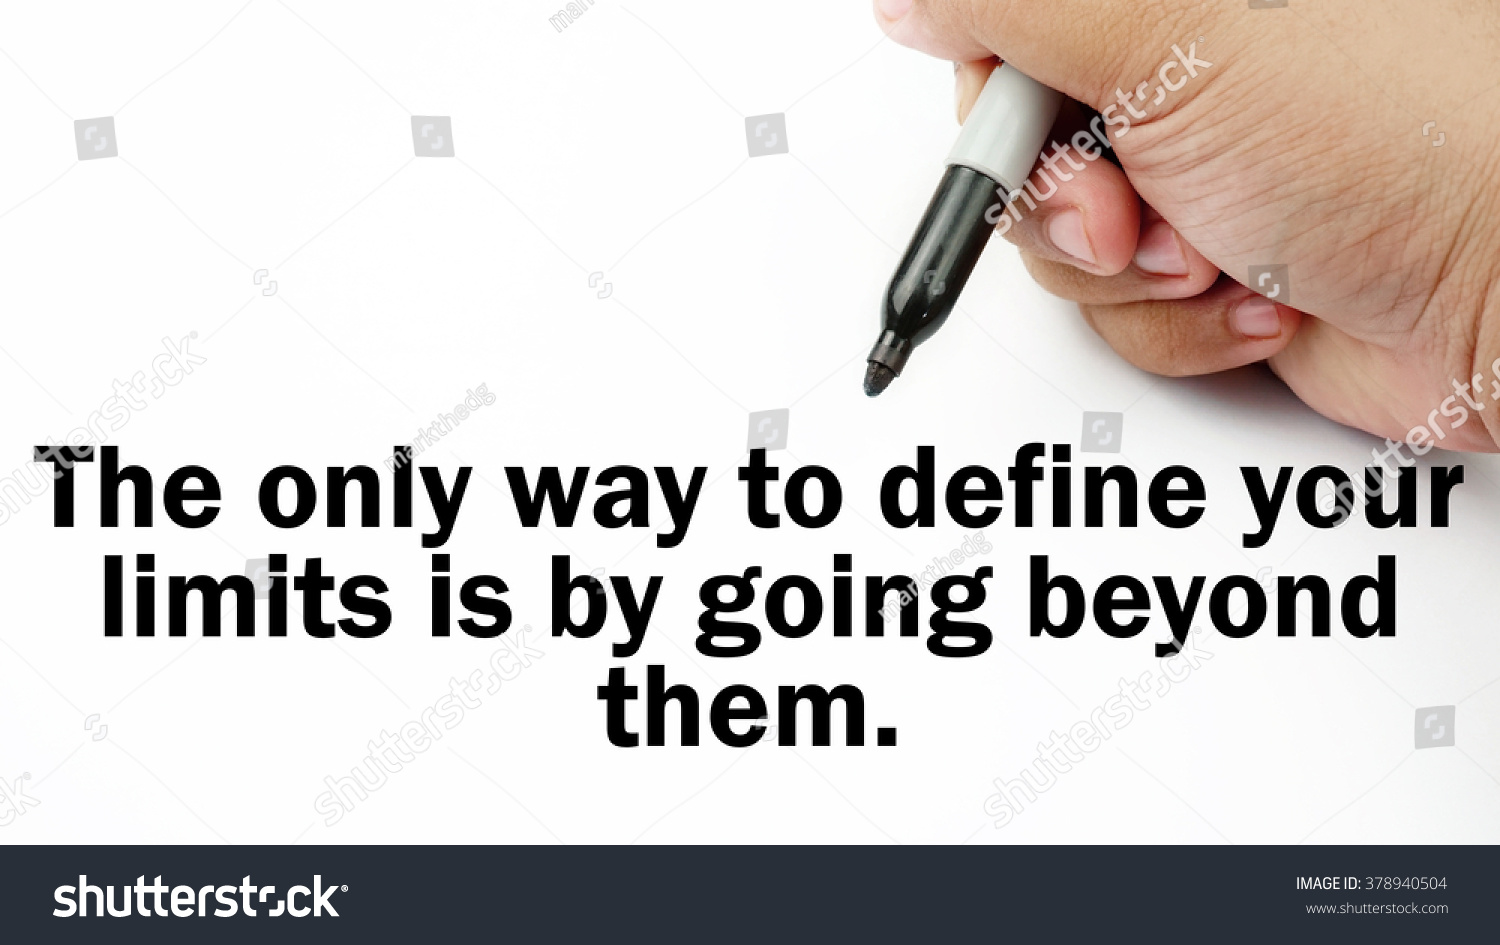 royalty handwriting of inspirational motivation  handwriting of inspirational motivation quotes the only way to define your limits is by going